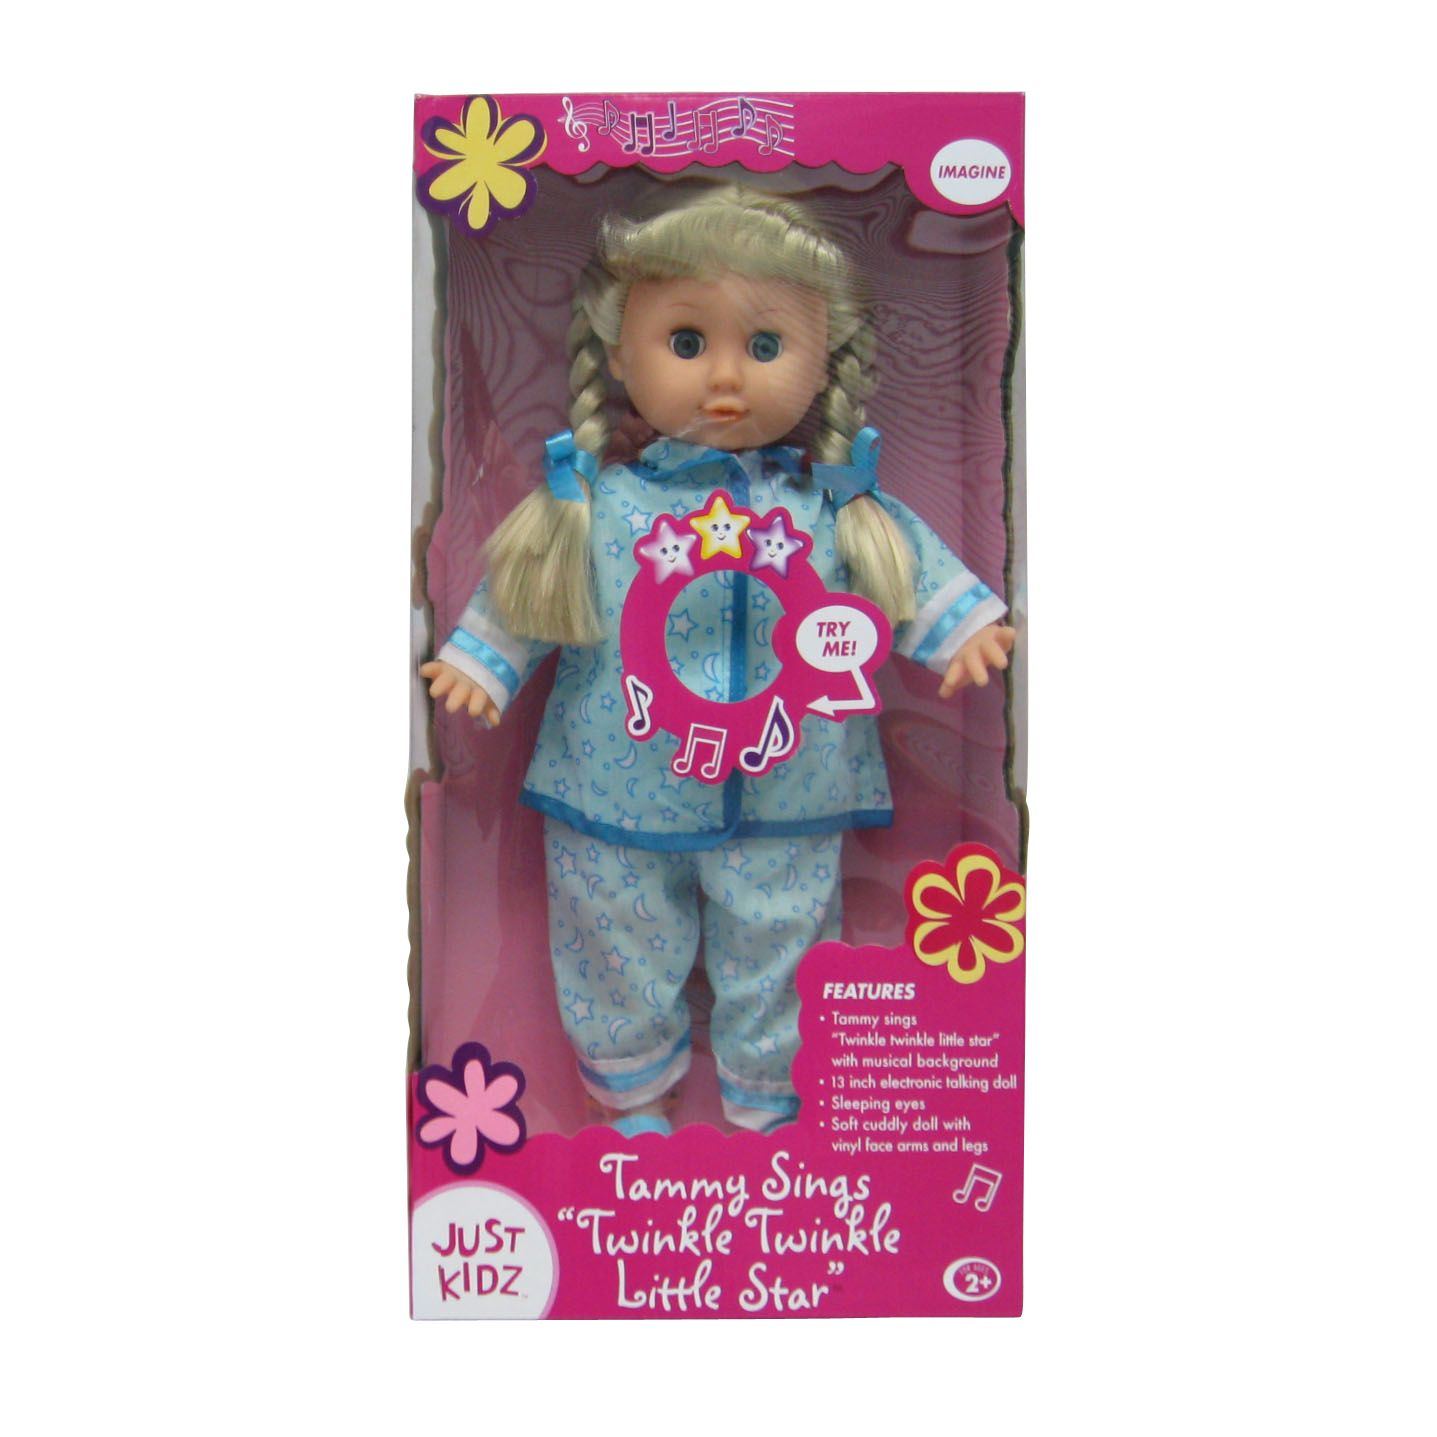 Just Kidz  Nursery Rhyme Doll - Tammy